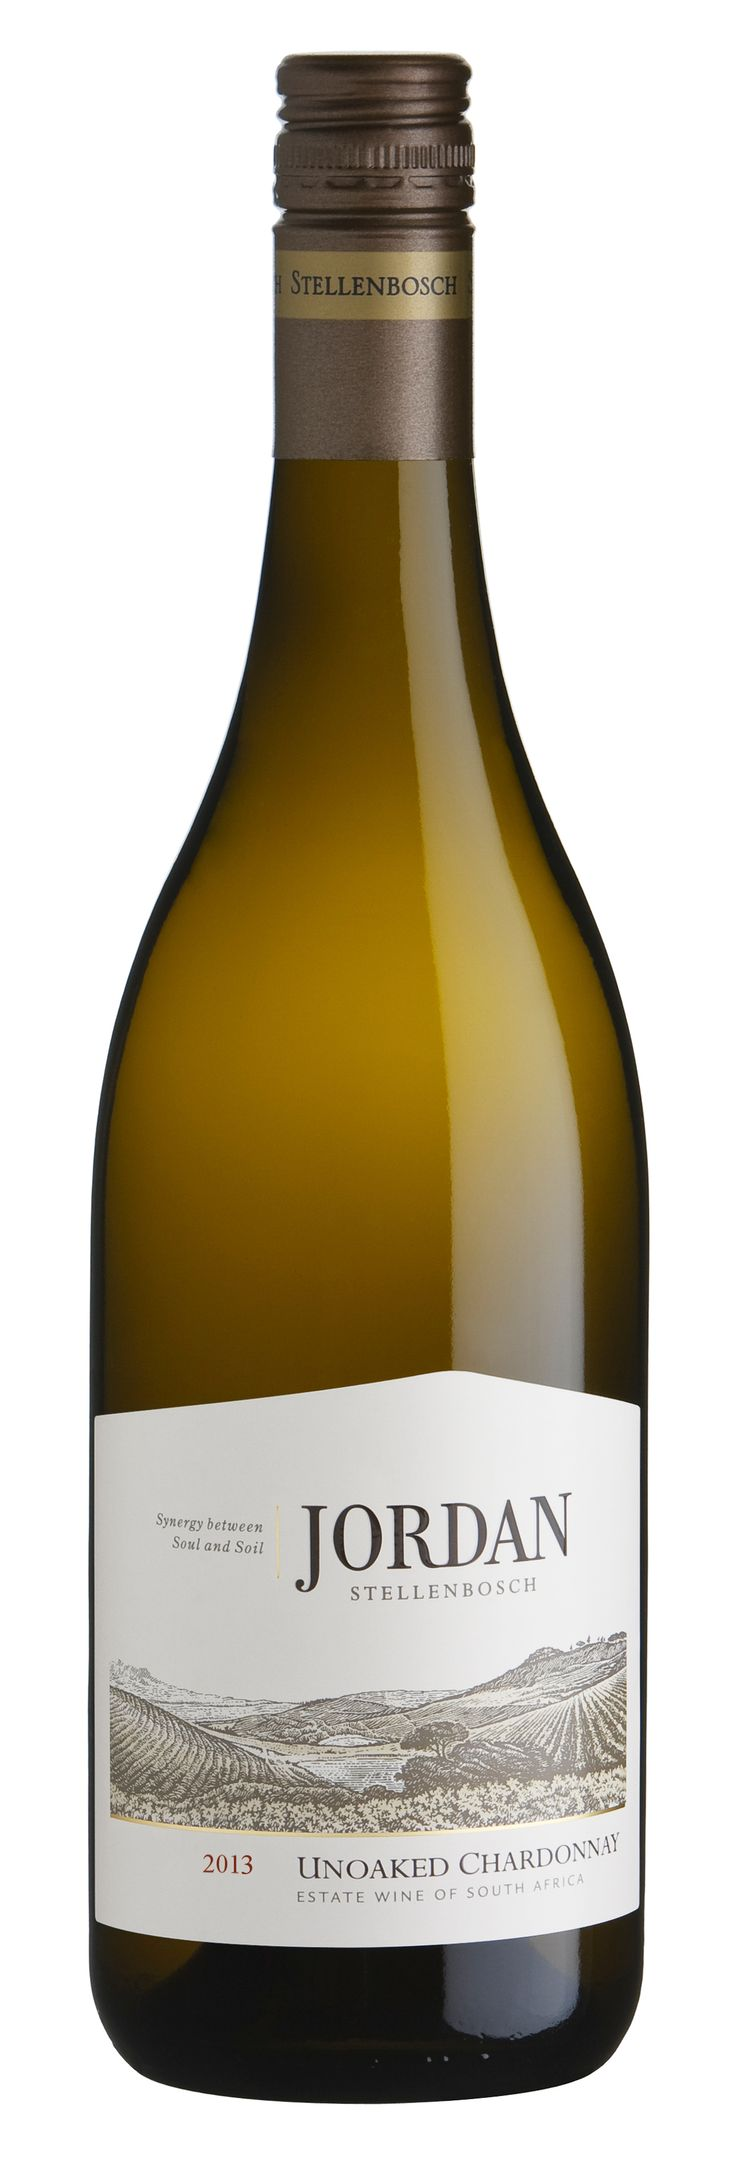 100% Chardonnay - Unoaked - Fresh limey-citrus and floral aromas with underlying tropical fruit and winter melon  flavours.  Rich, full palate with a long, well balanced leesy finish.